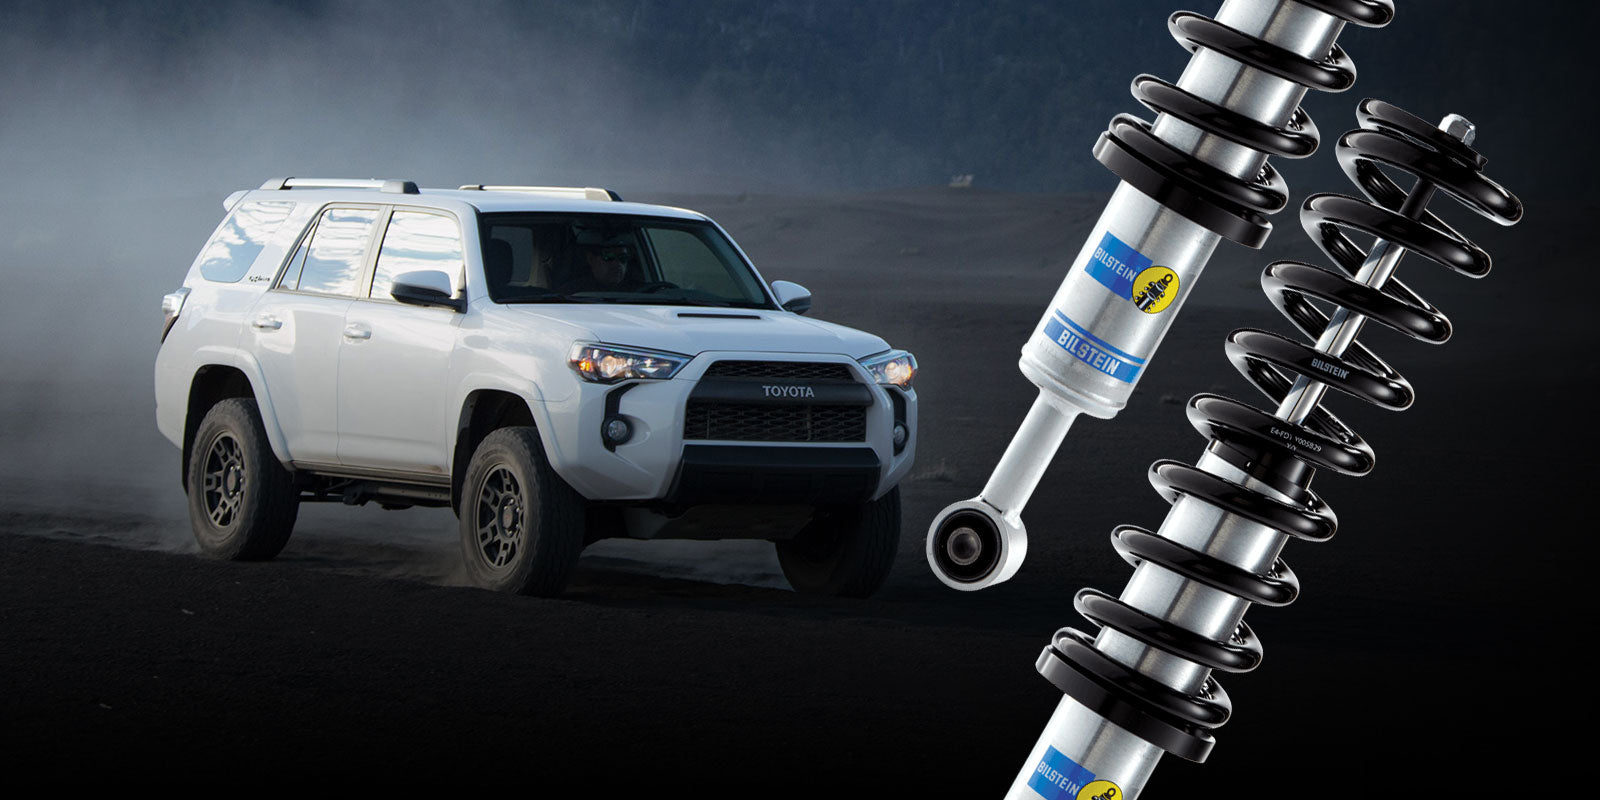 The Ultimate Bilstein 6112 Struts and Springs Guide